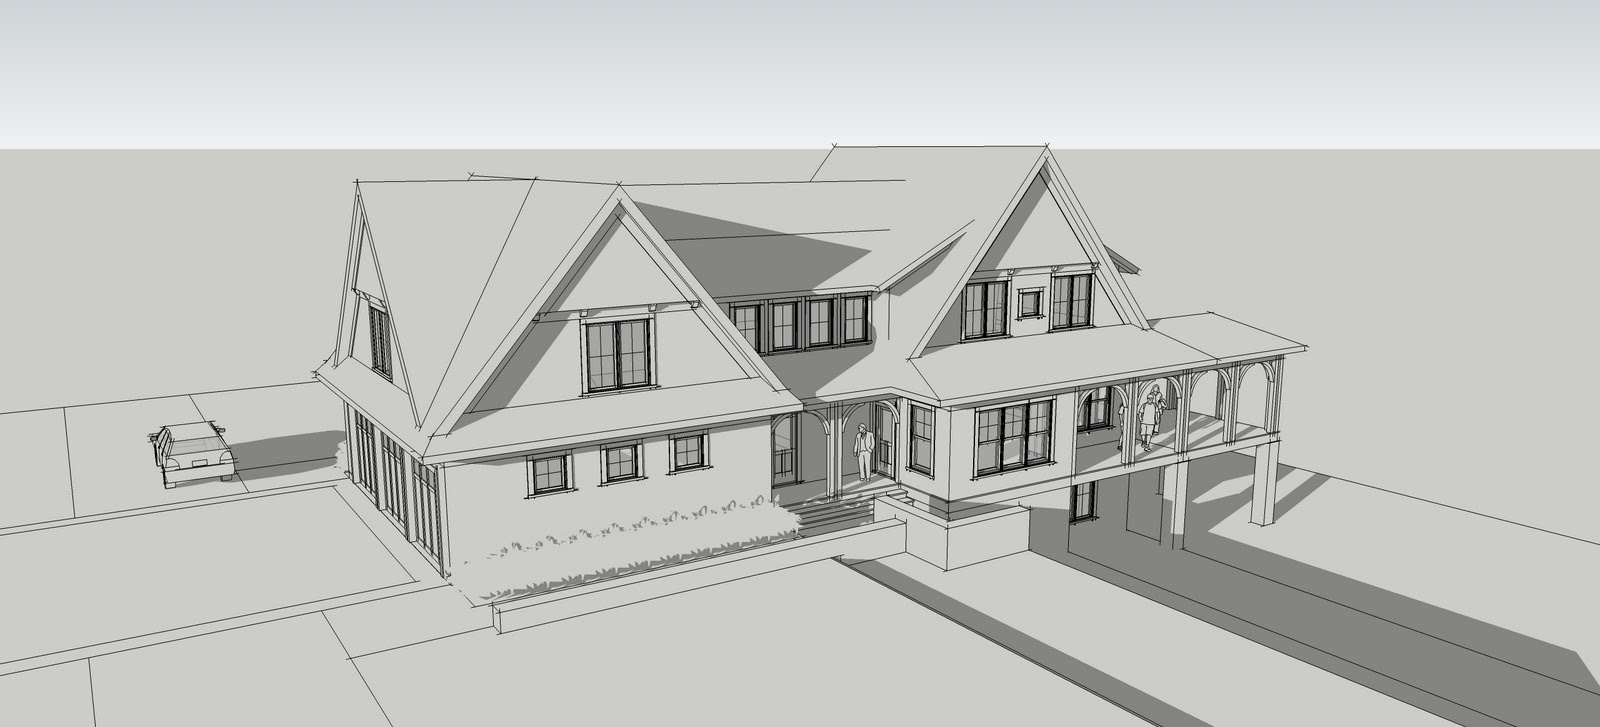 Our Design Work Always Begins With Plan Sketches And 3d Massing Studies. A  3d Model Beats Exterior Elevation Sketches Every Time When Trying To  Communicate ...